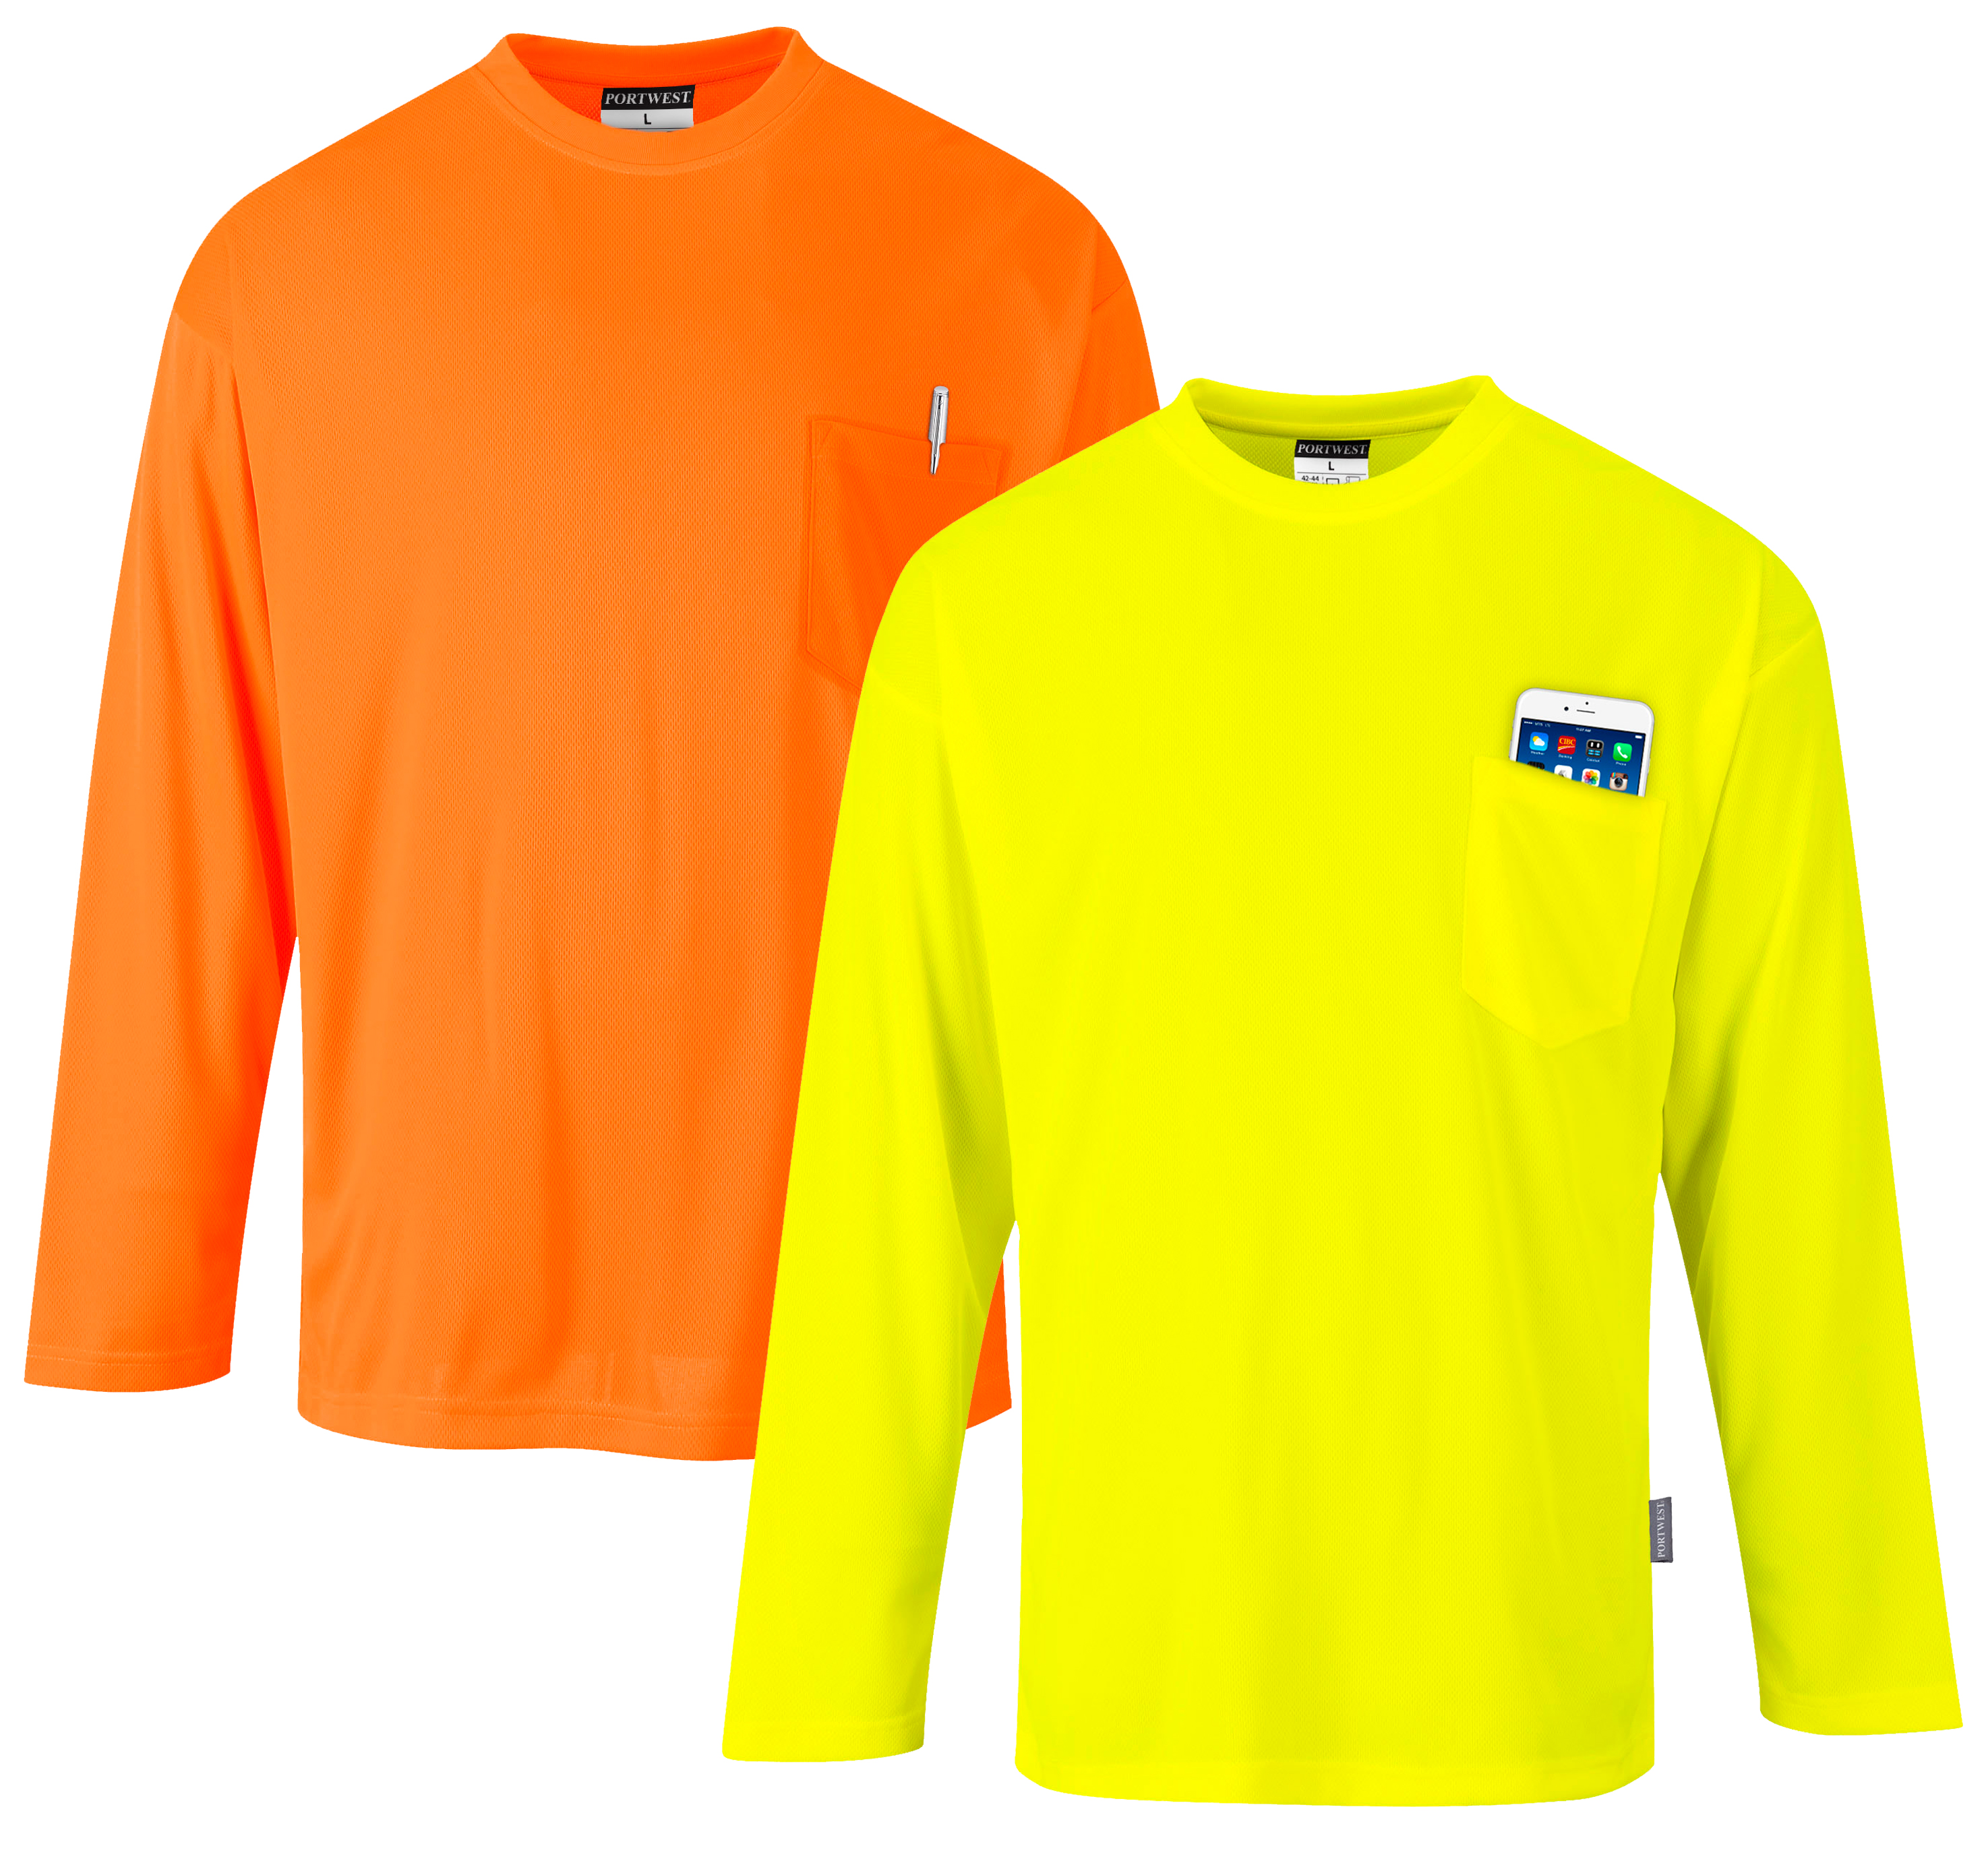 7f0c7d320ef Non-rated High Visibility Long Sleeve T-shirt - Portwest S579 ...